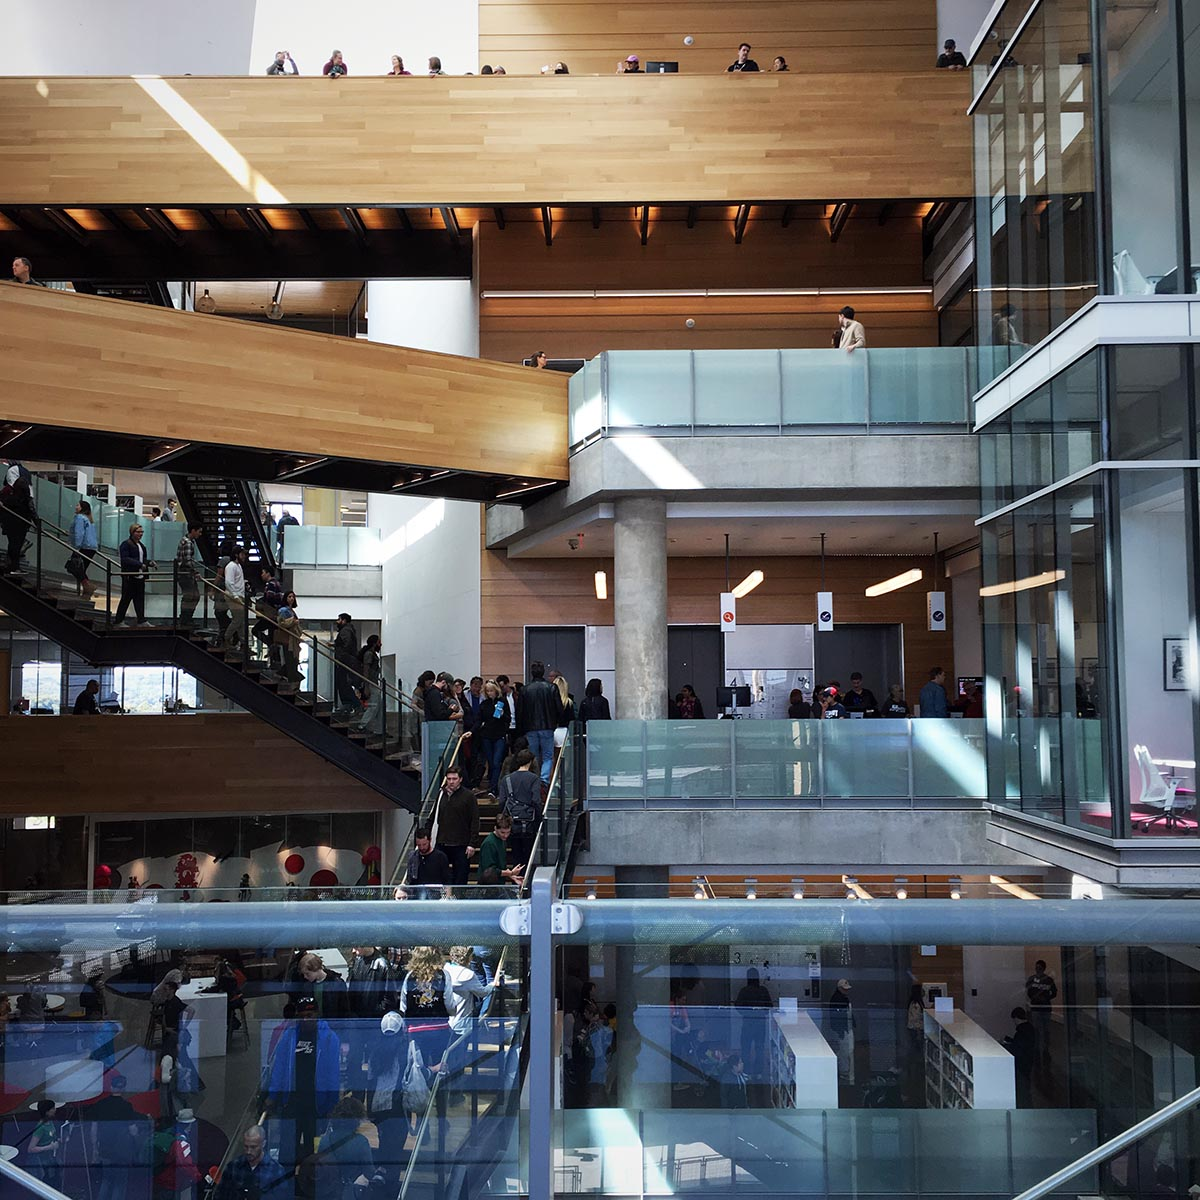 Opening of the Austin Central Library